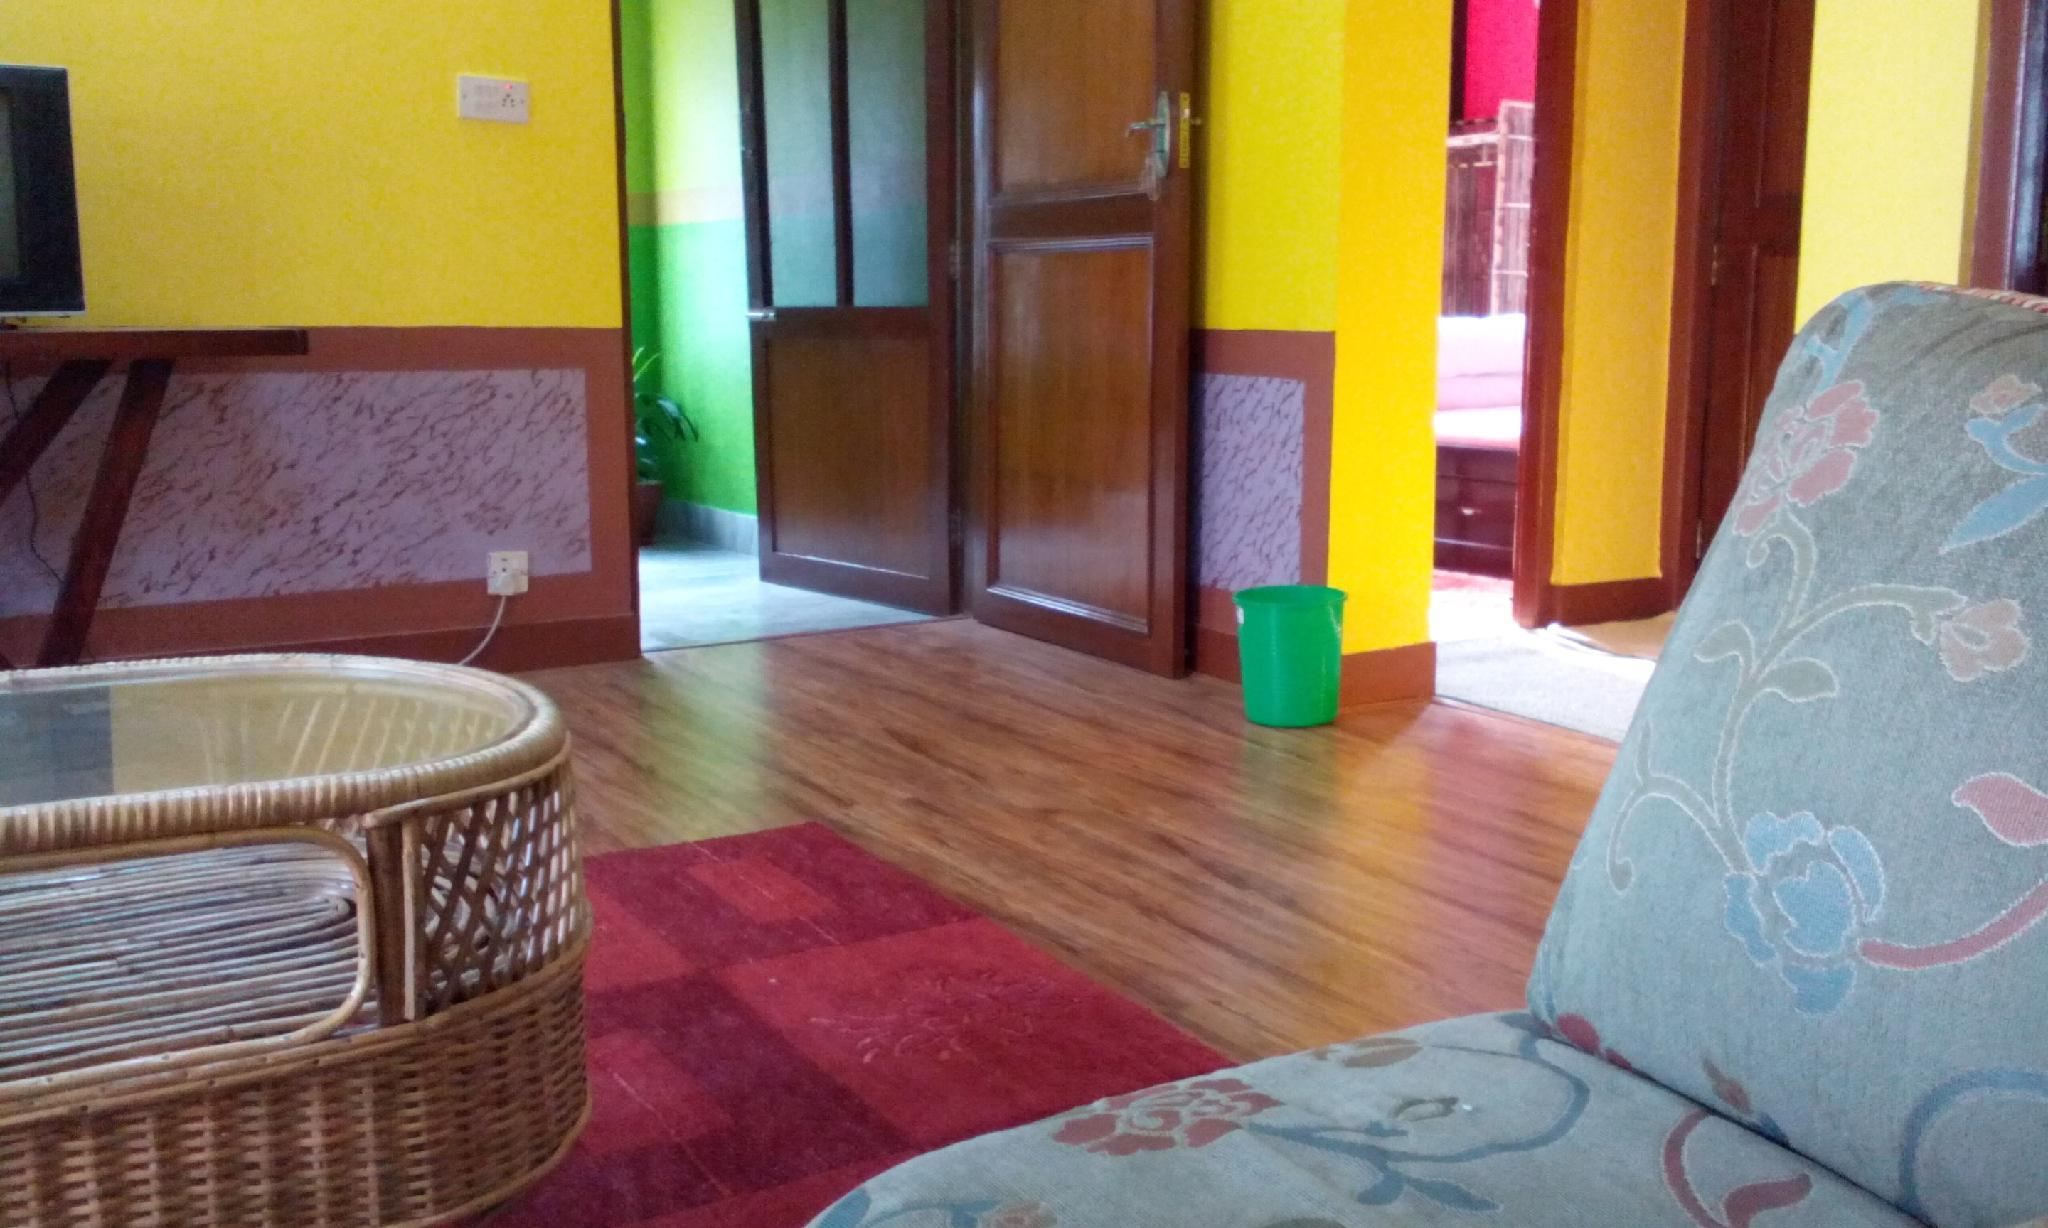 Nepali Home Environment And Peaceful Place.